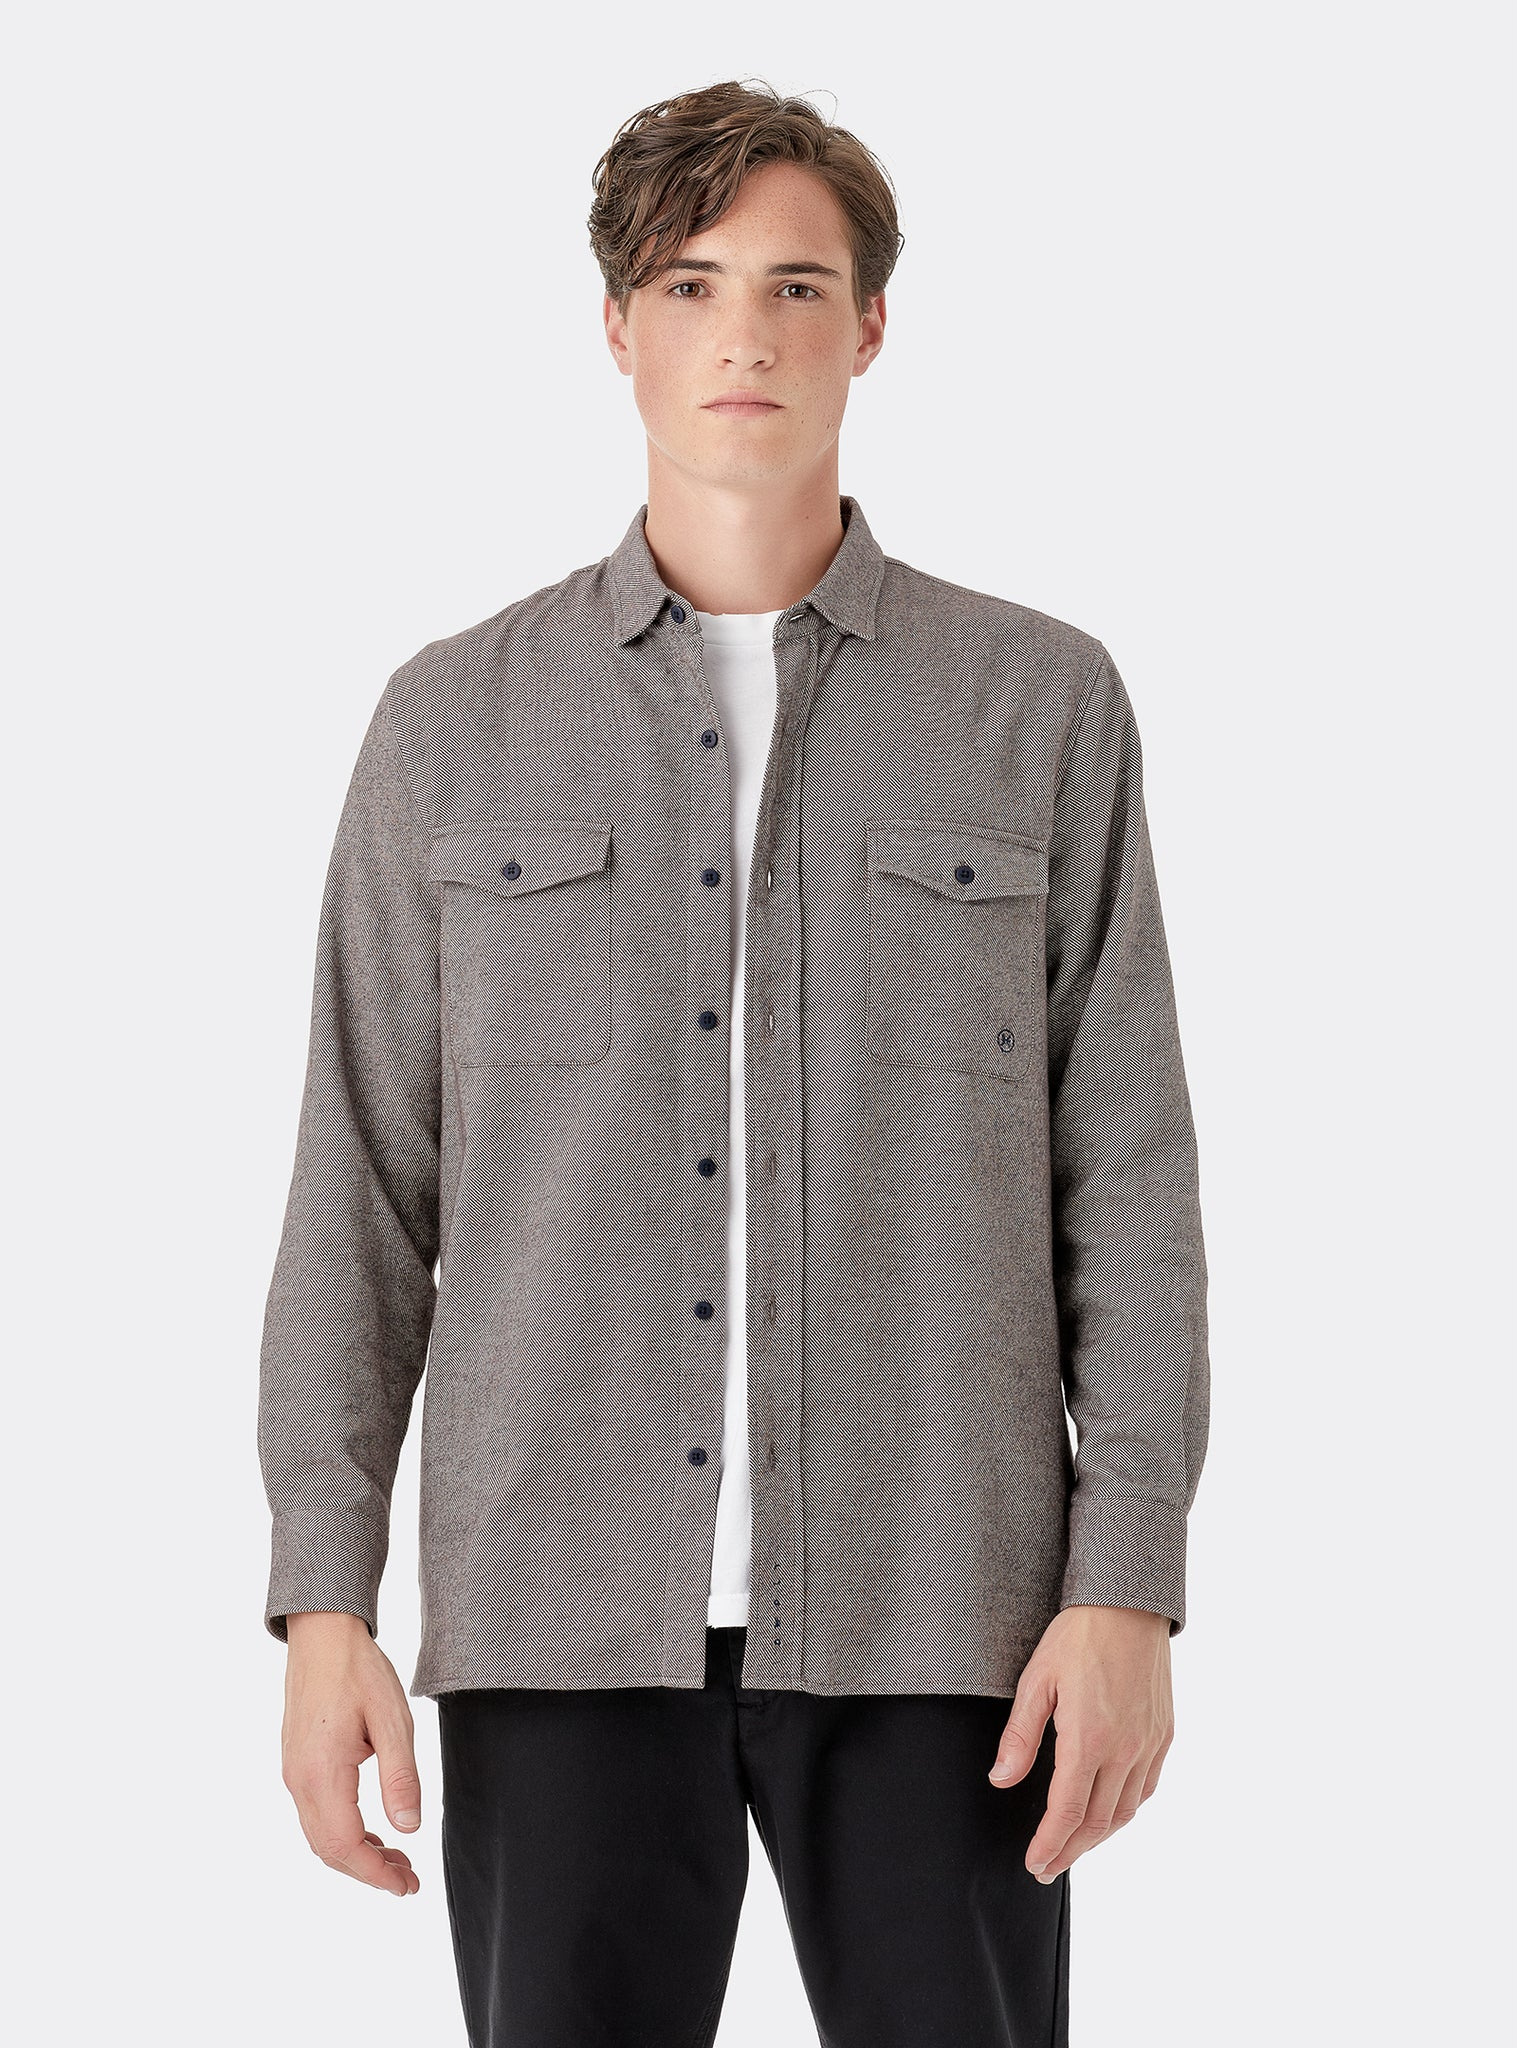 Texture I Shirt Longsleeve Brown